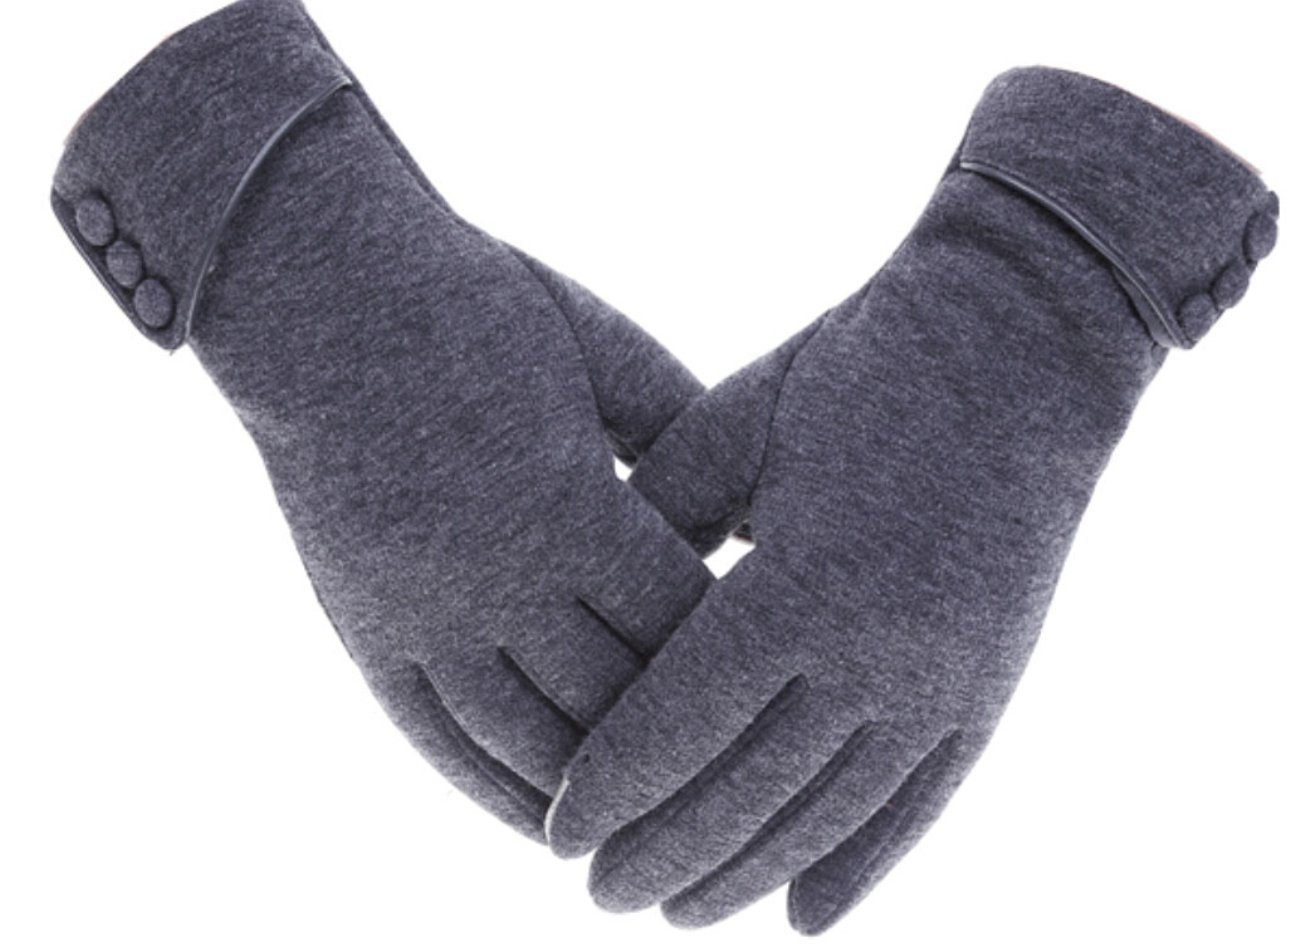 Gloves for winter